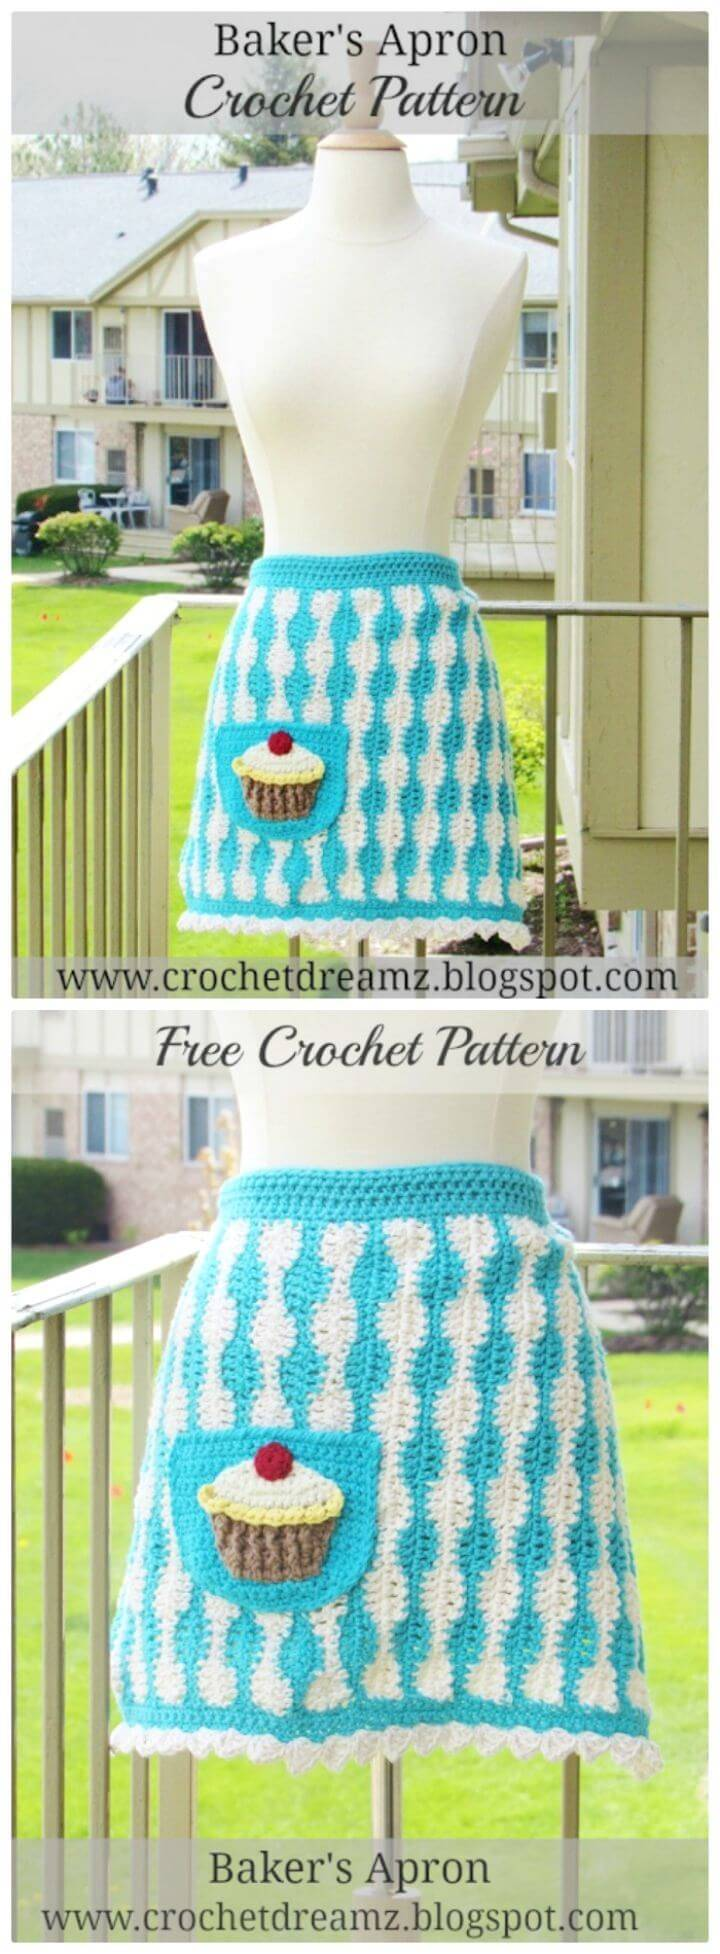 Easy Crochet Baker's Apron with Jumbo Cupcake Applique - Free Pattern